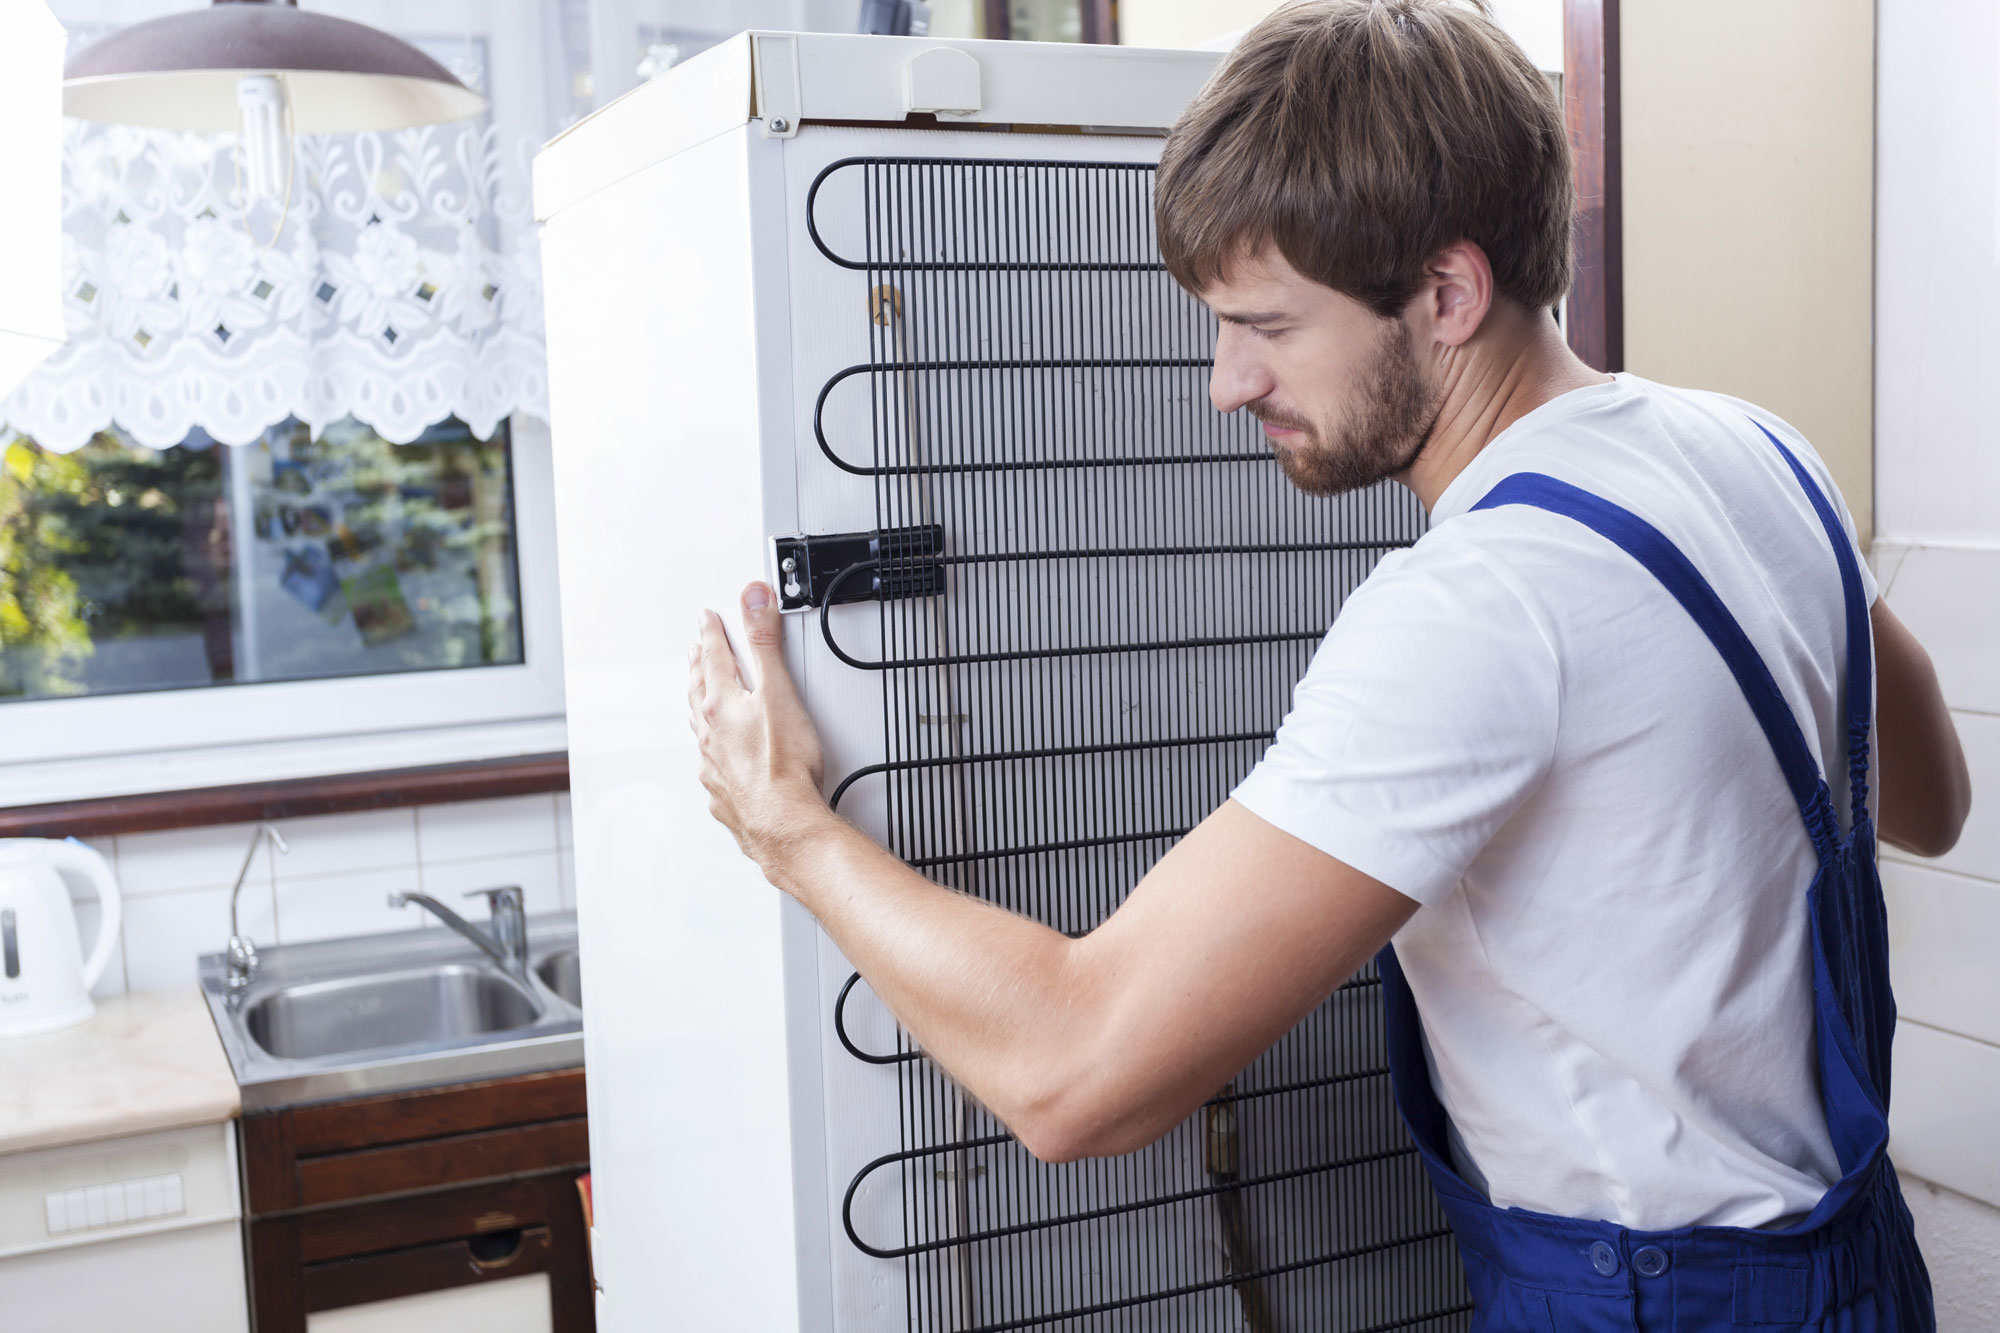 KMR Brookswood appliance installations